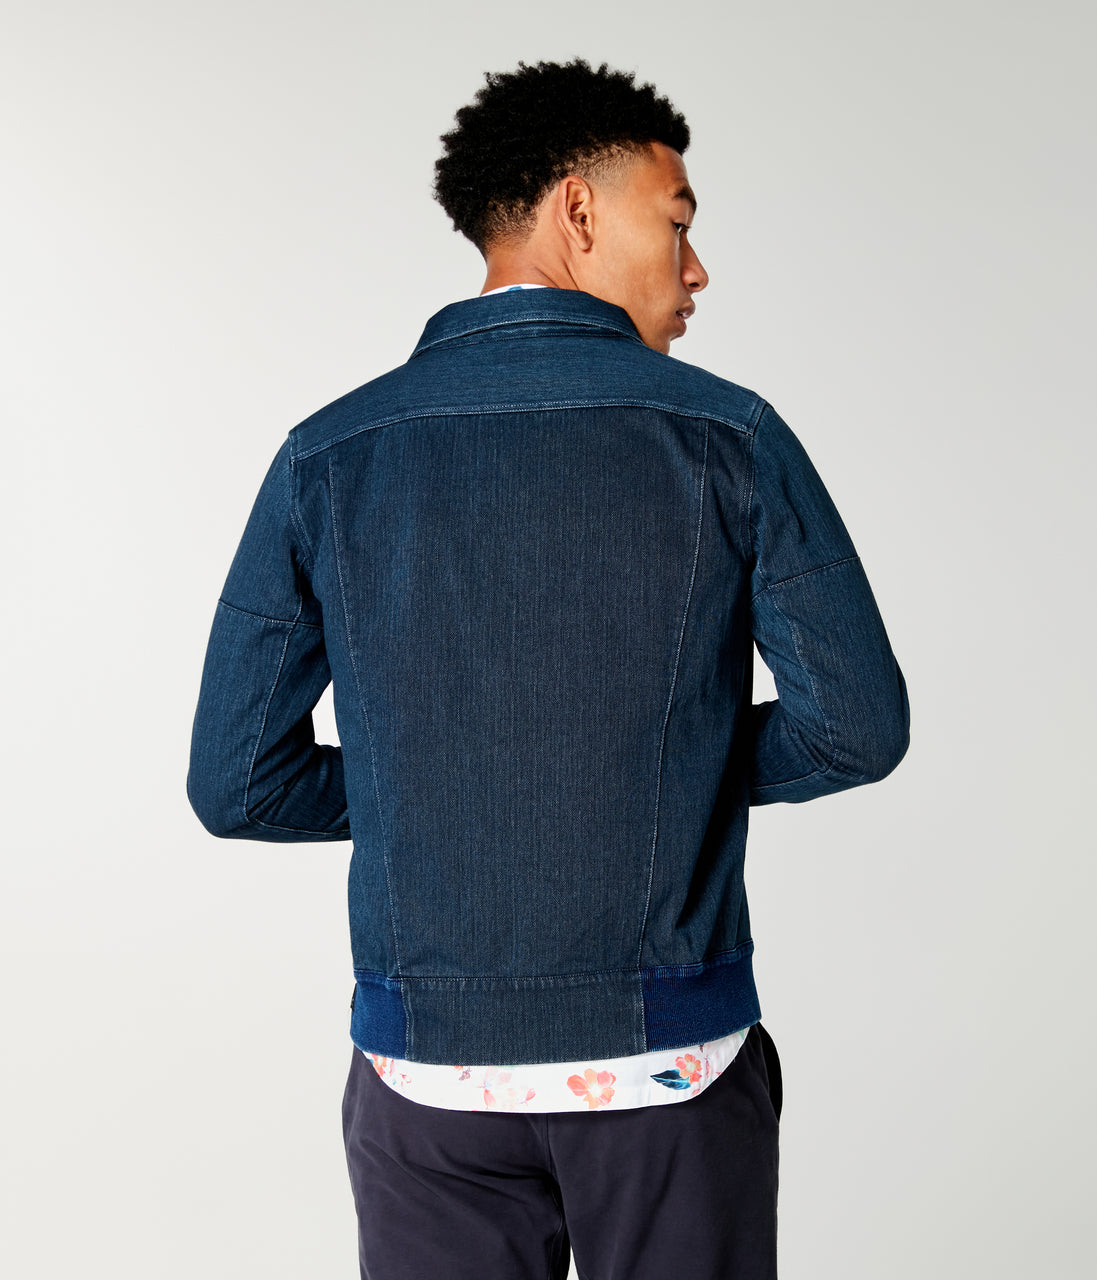 Twill Knit Jean Jacket - Indigo - Good Man Brand - Twill Knit Jean Jacket - Indigo